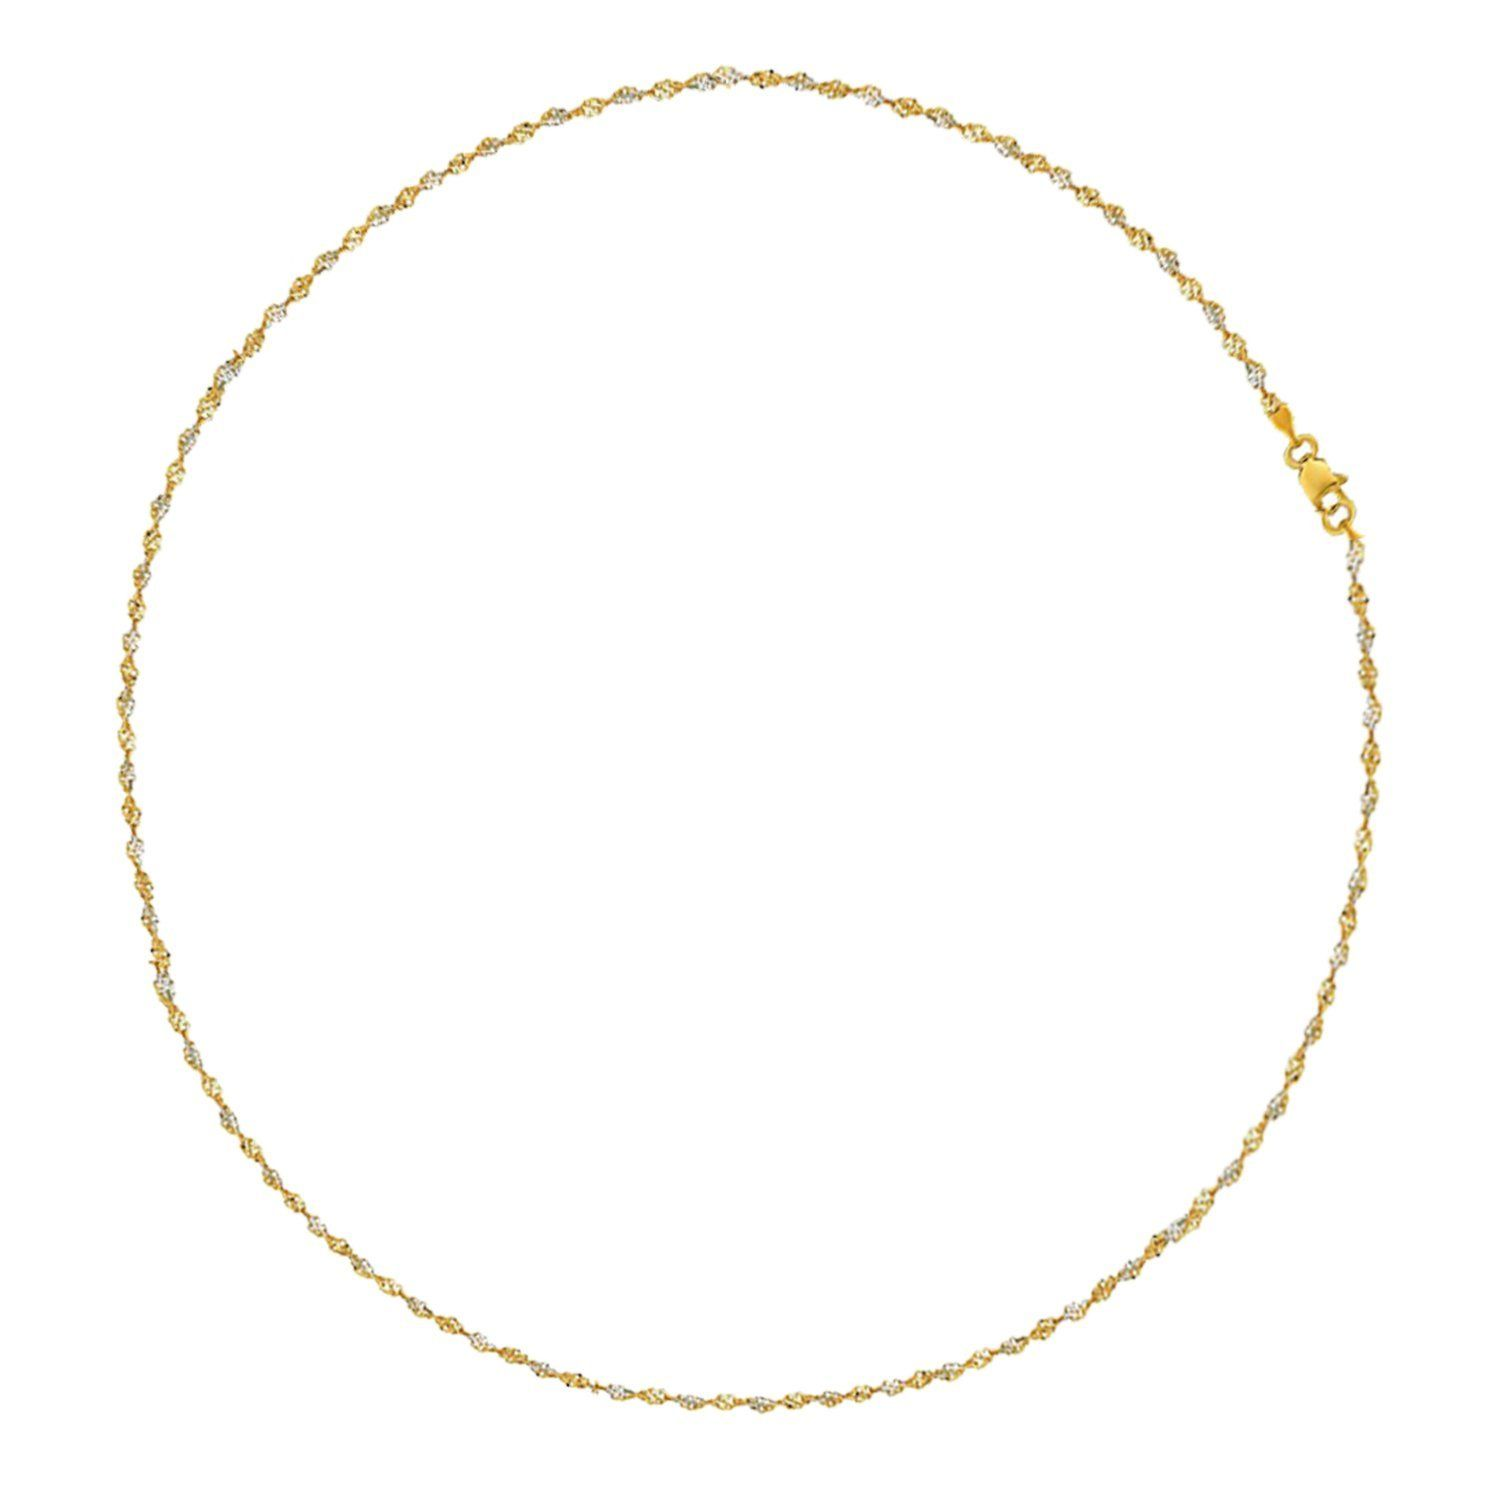 anklet gold mondier white zirconia jewelry round with cubic yellow jewellery